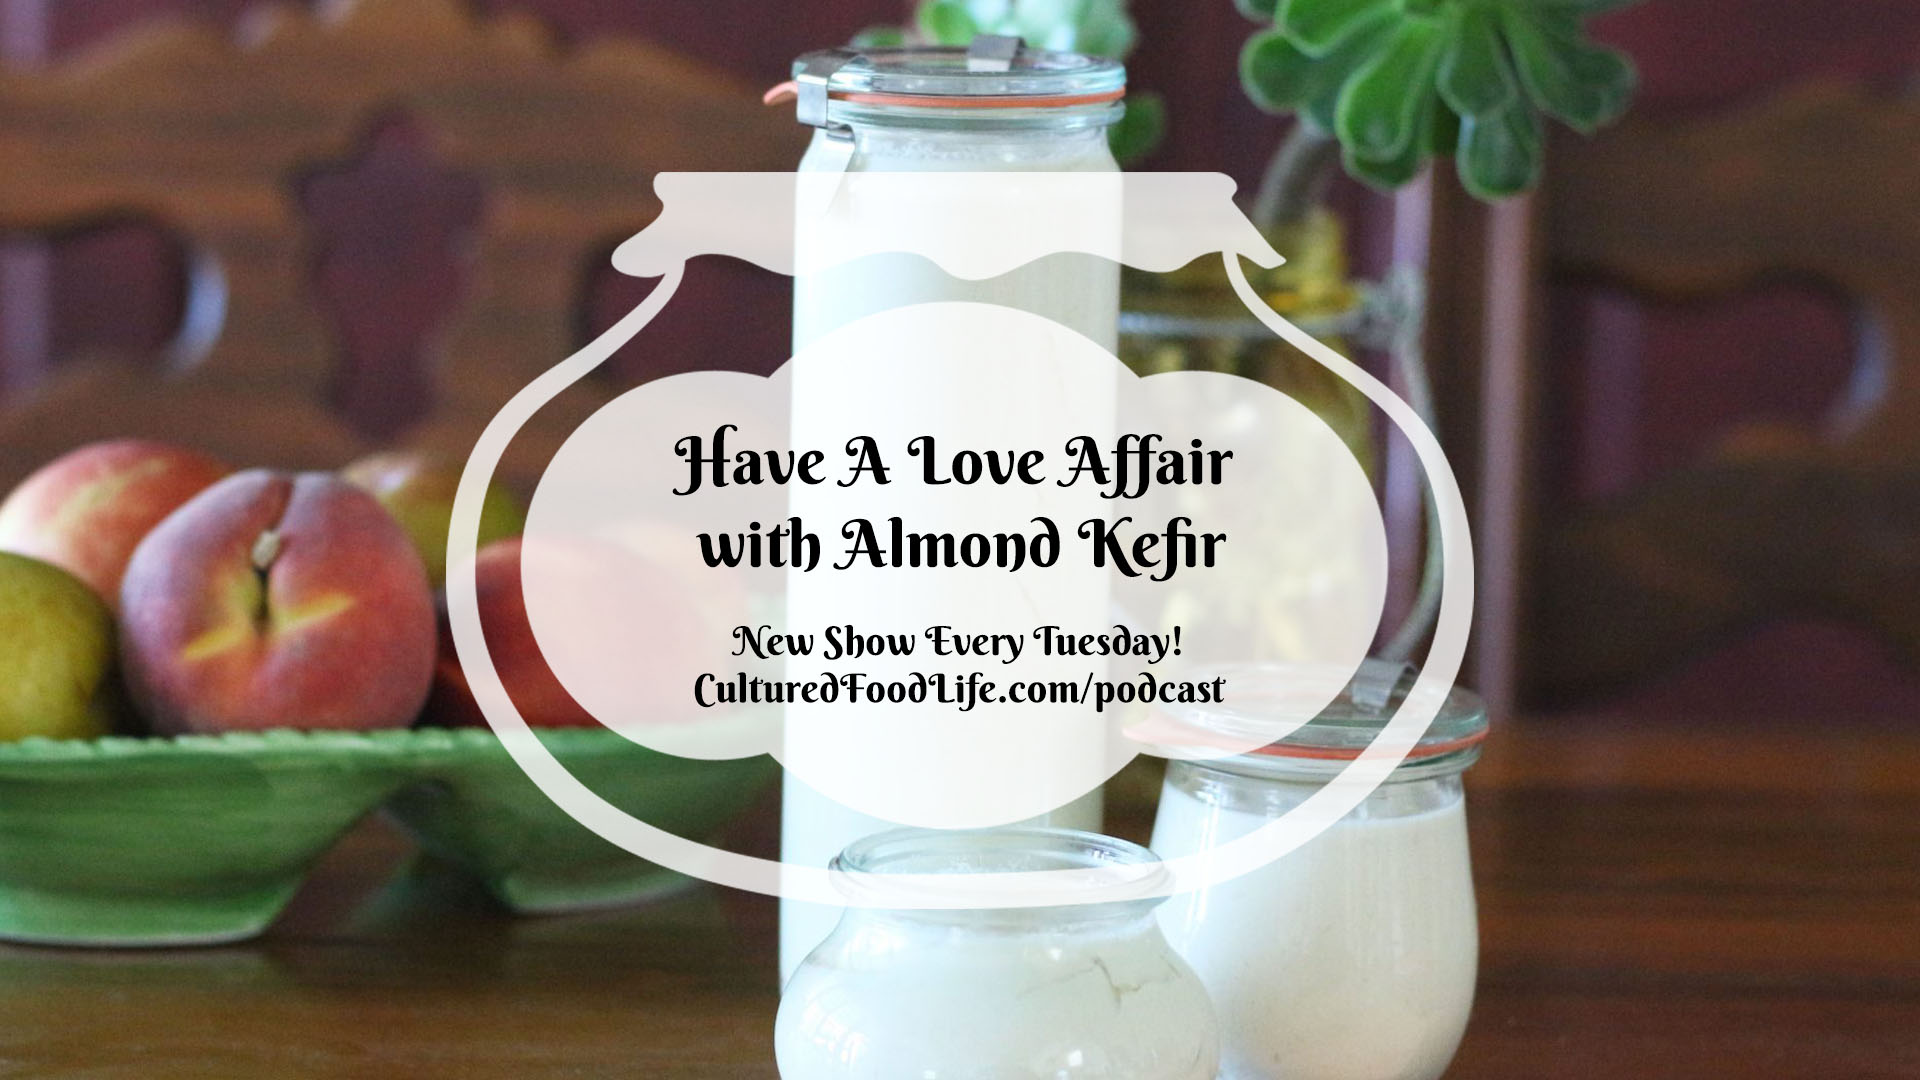 Have A Love Affair with Almond Kefir